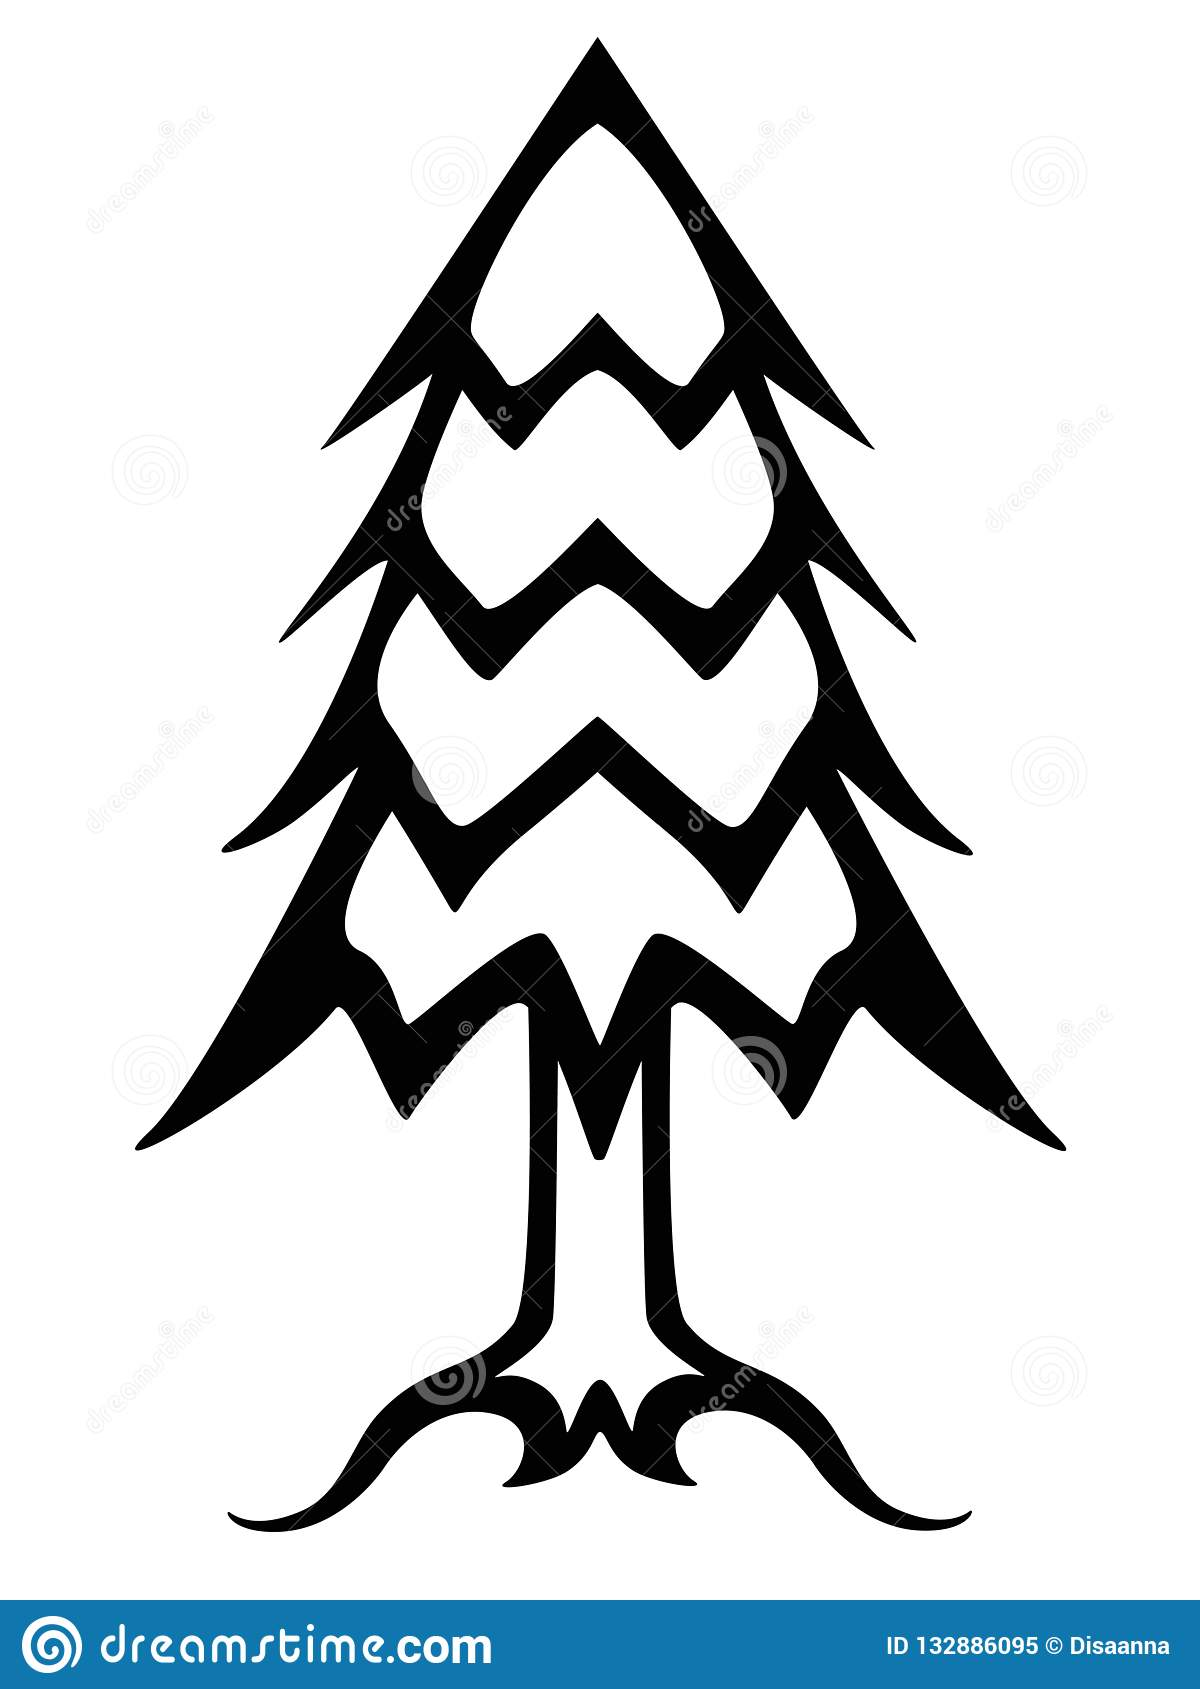 Christmas tree black and white linear picture. Outline conifer tree vector illustration.